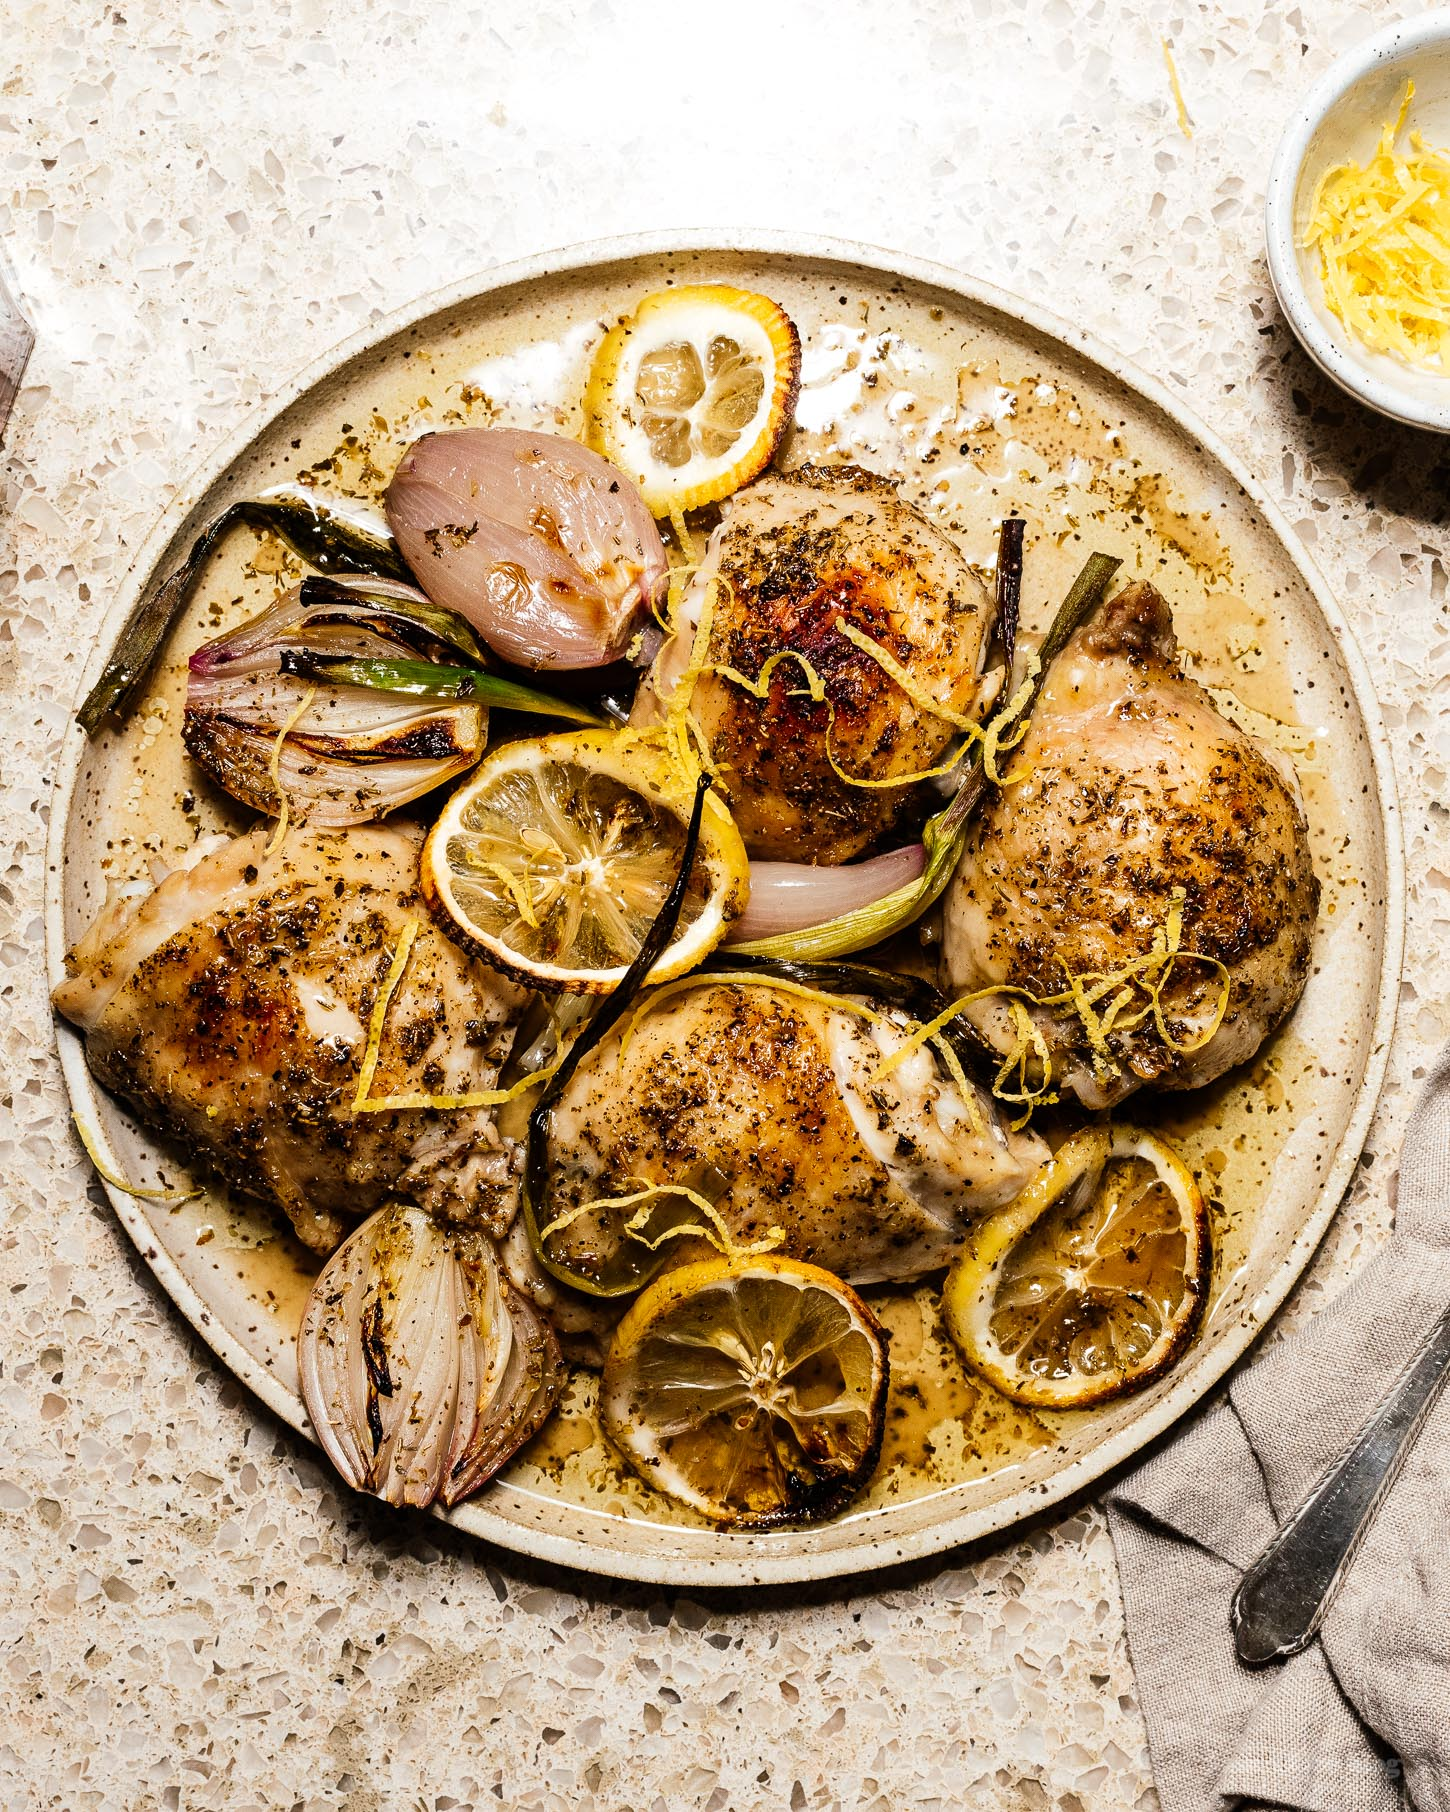 An easy weeknight oven roasted lemon pepper chicken recipe | www.iamafoodblog.com